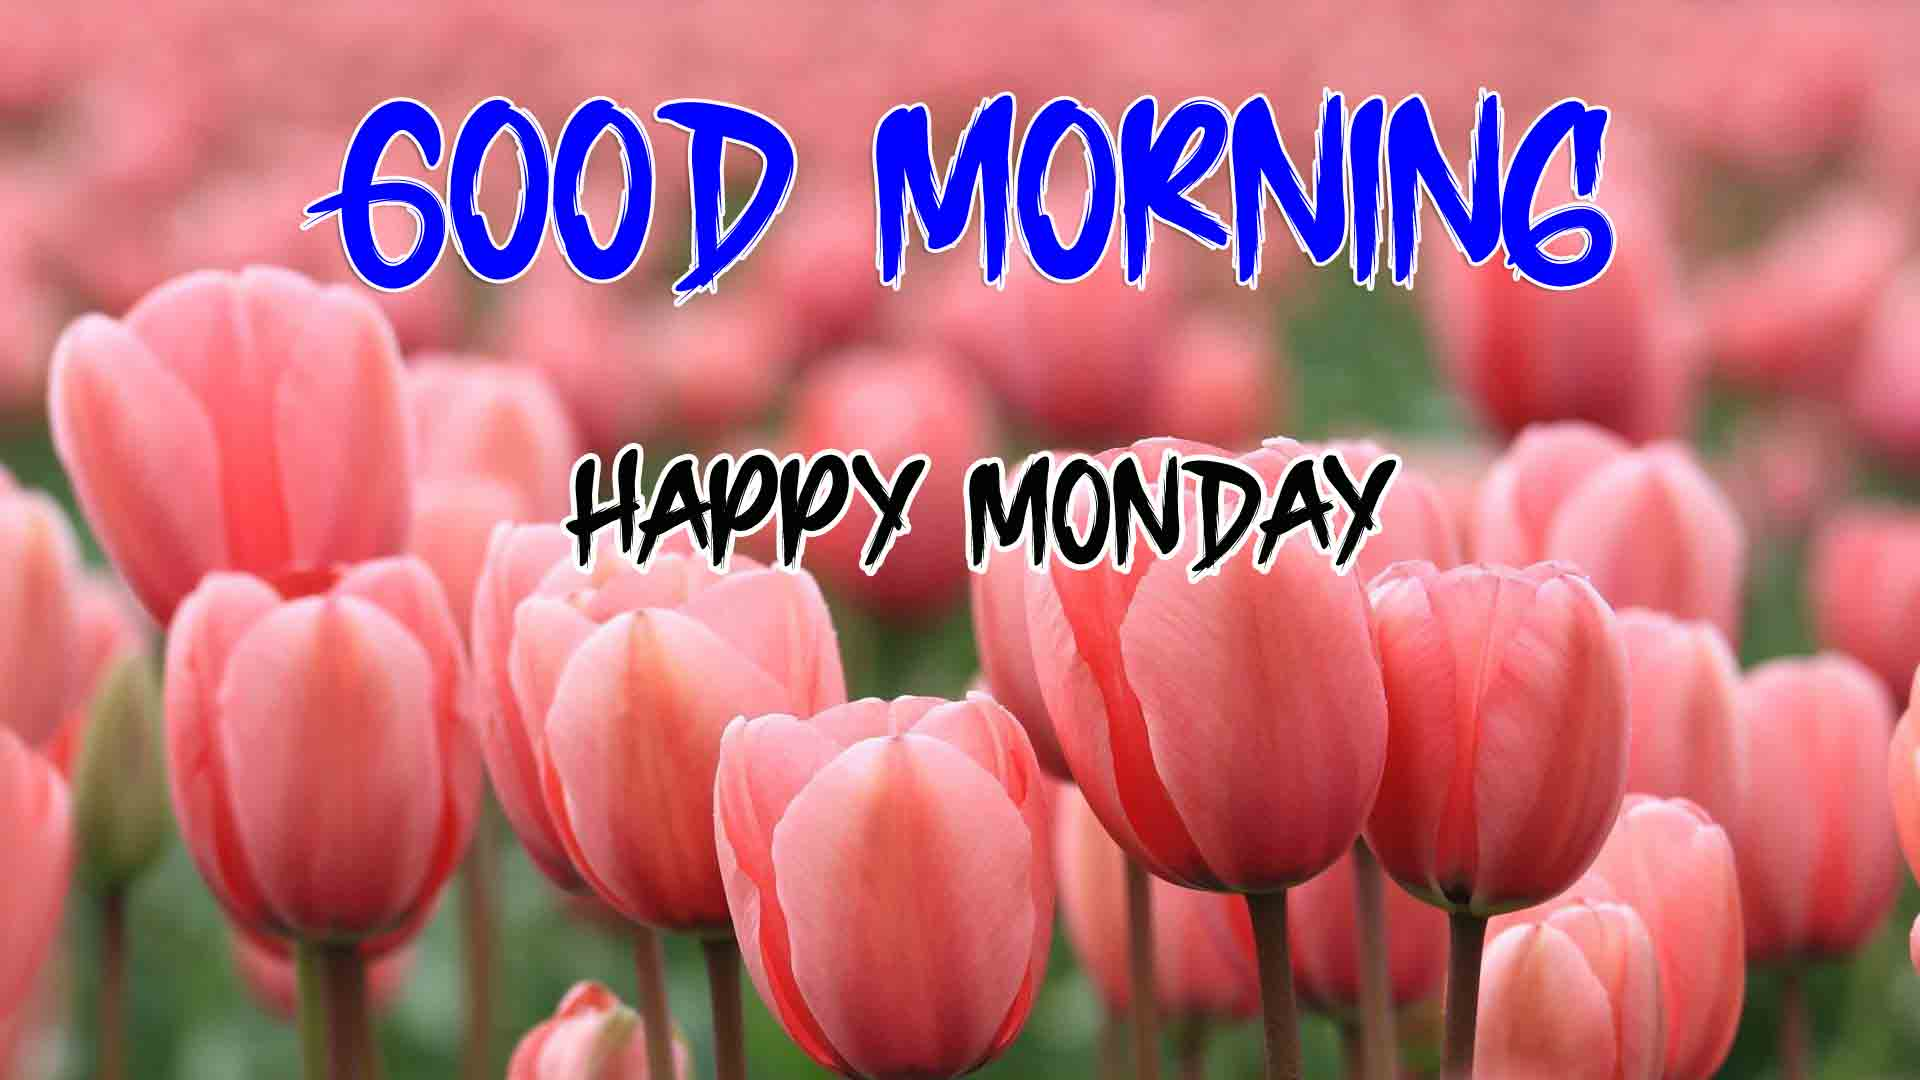 Monday Good Morning Images free hd for whatsapp